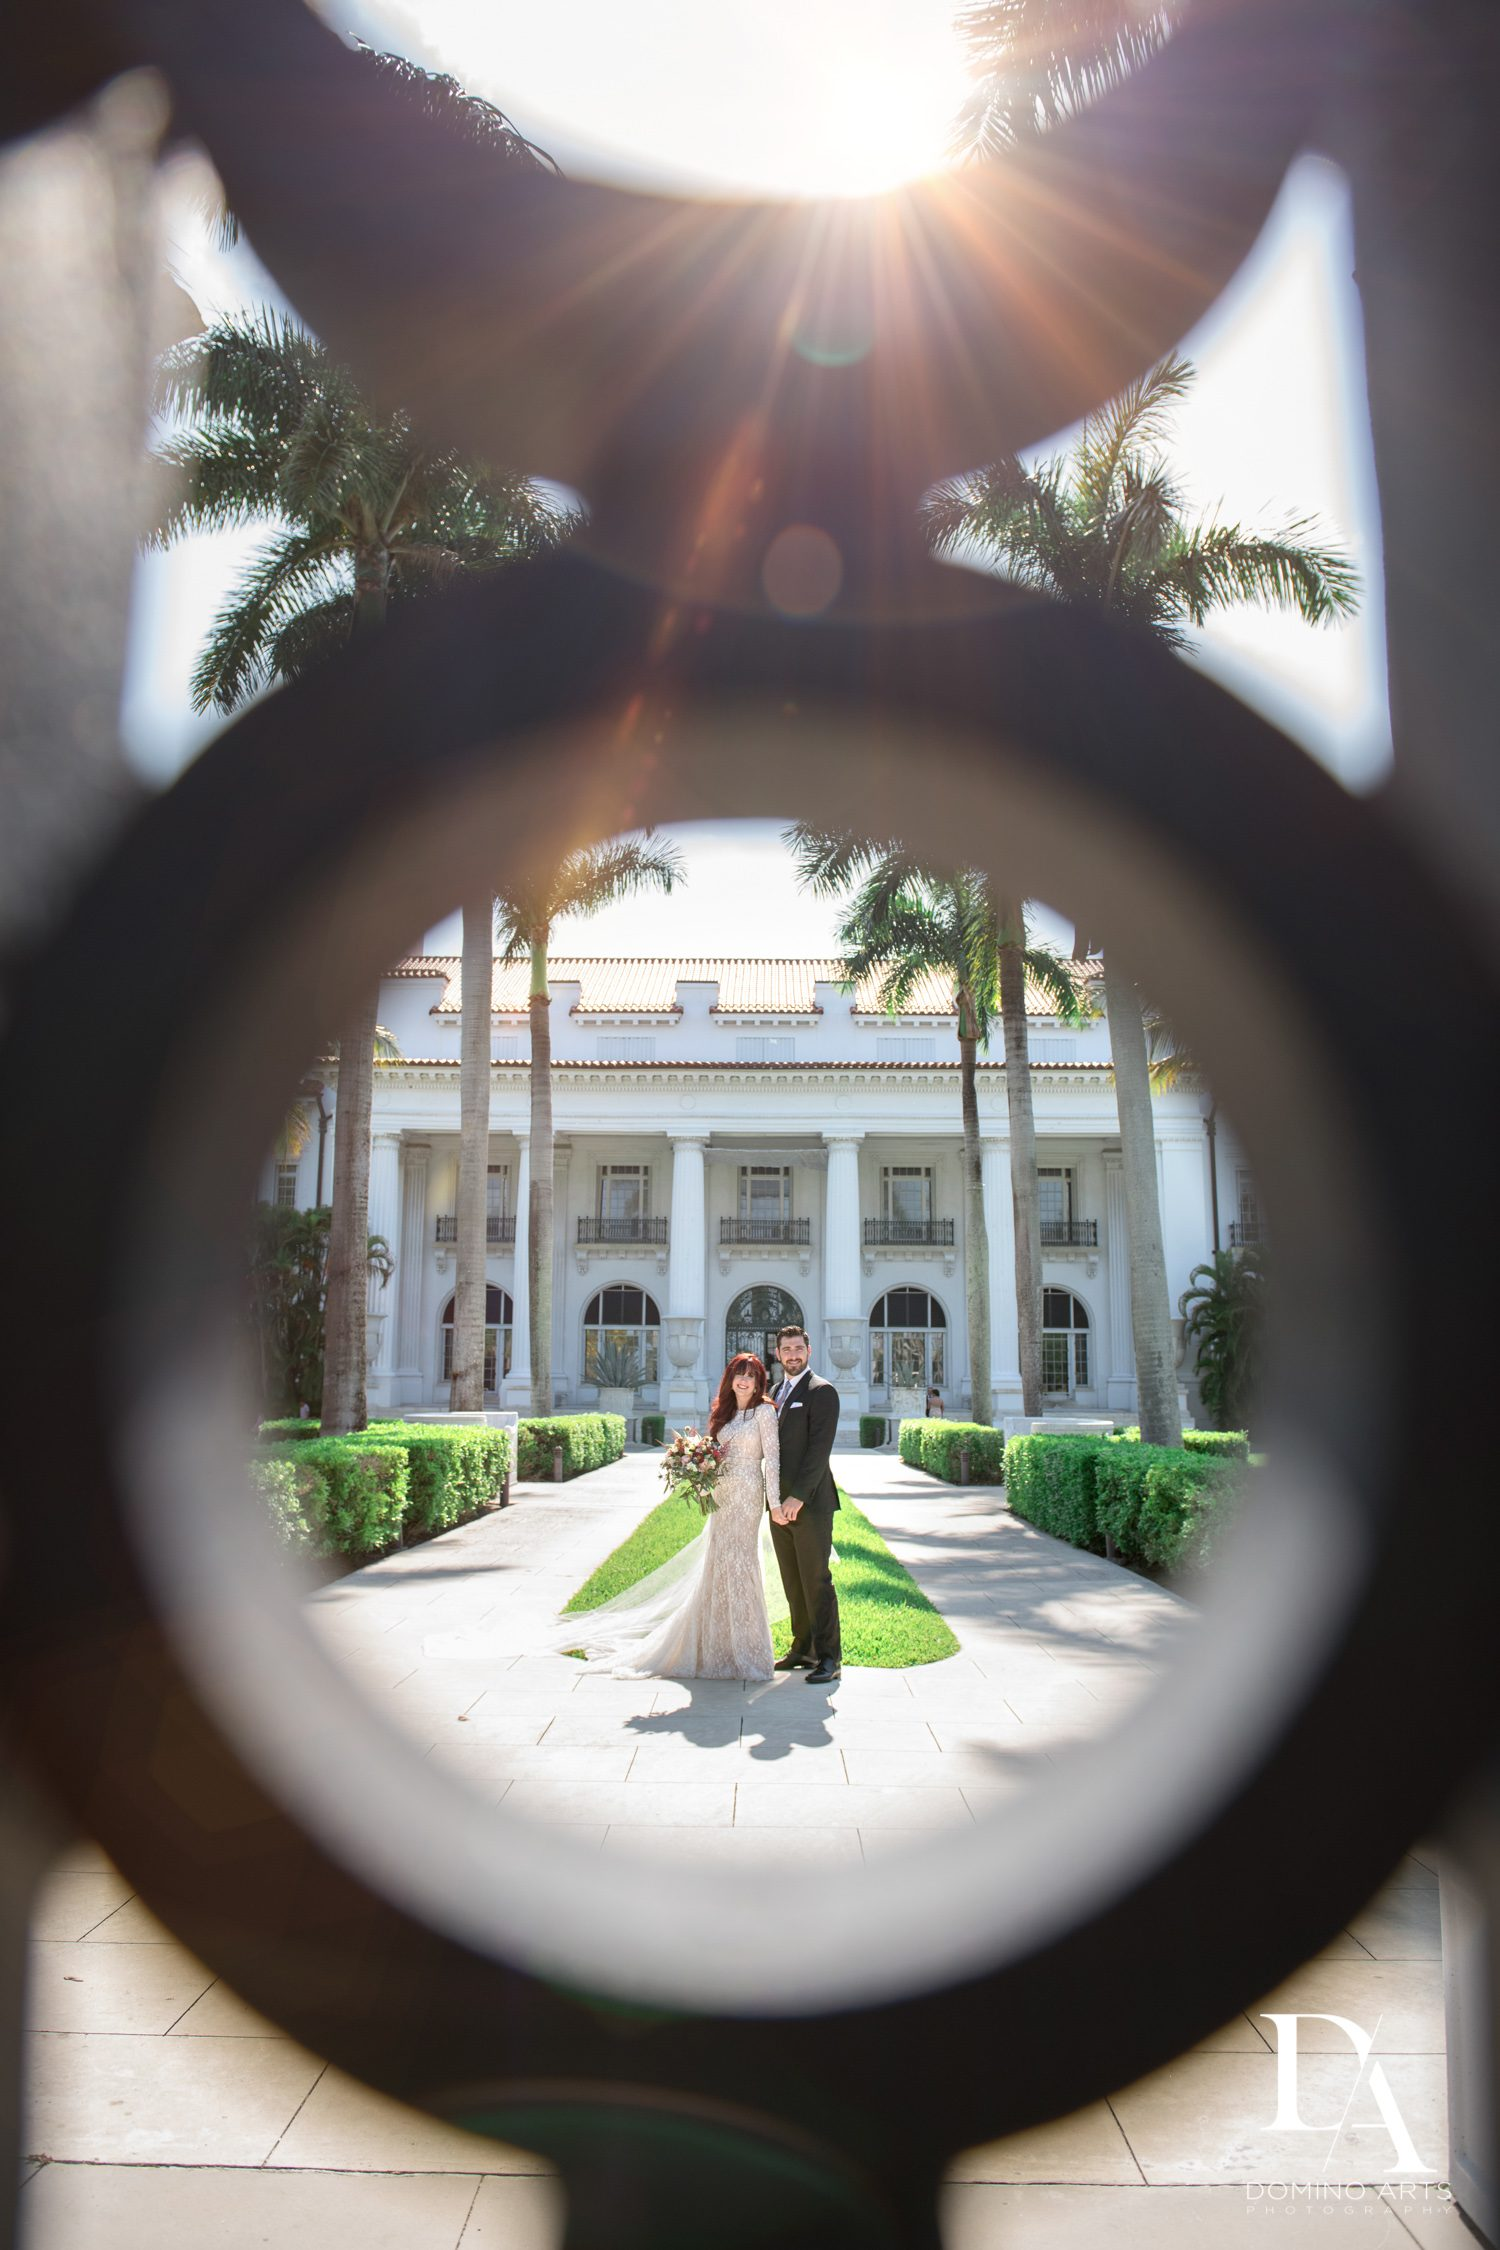 creative different pictures at Vintage Garden Wedding at Flagler Museum Palm Beach by Domino Arts Photography